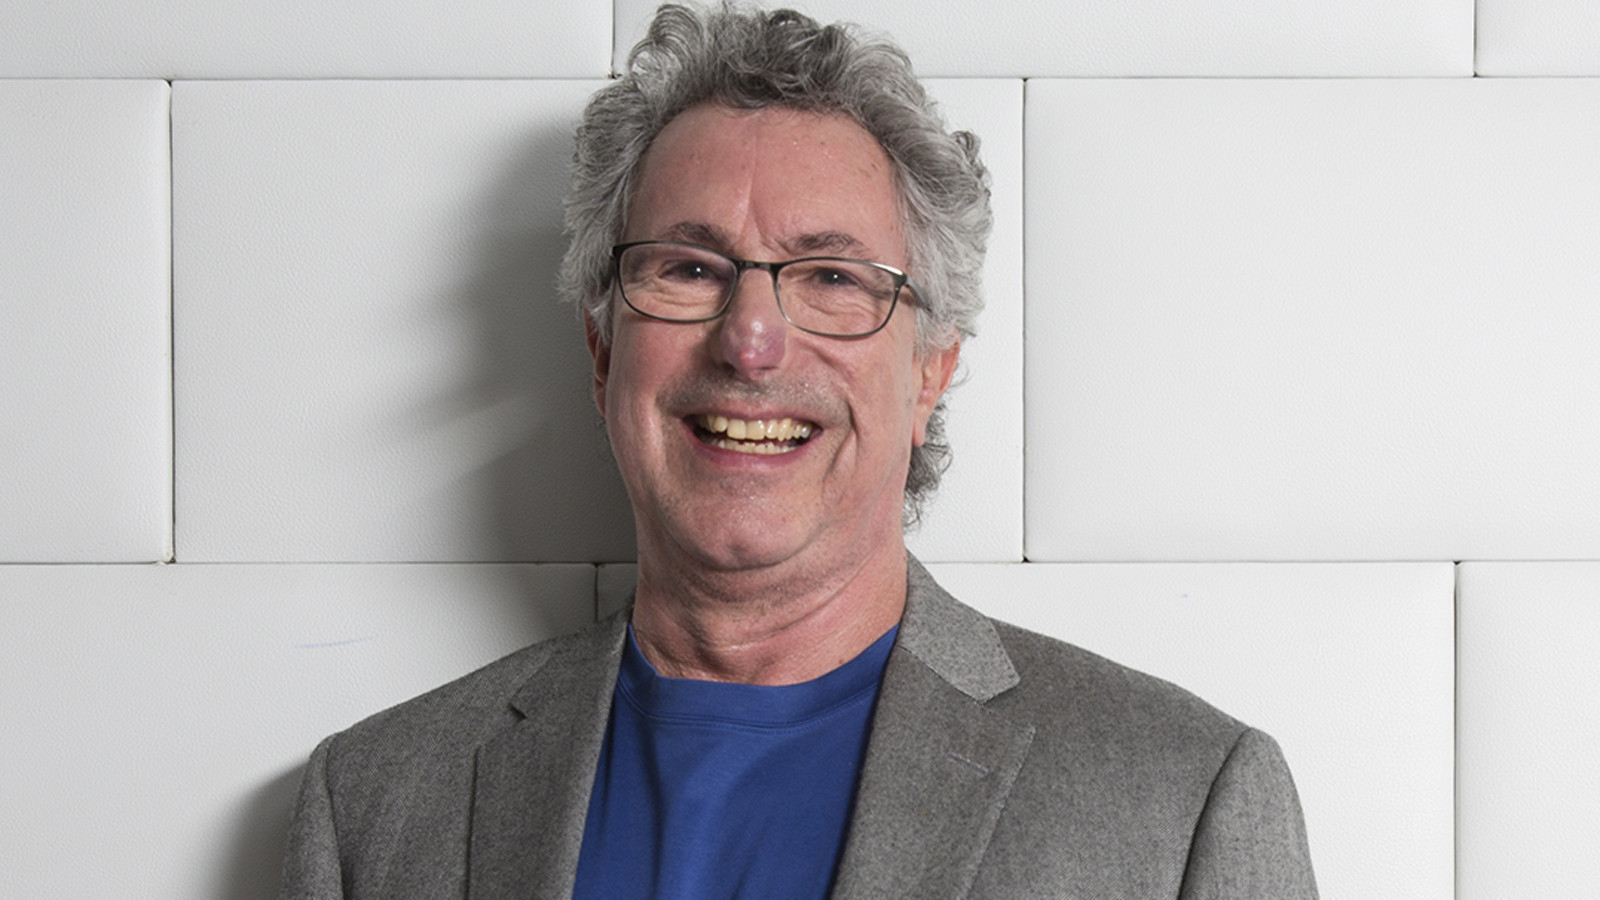 Beck Weathers Net Worth